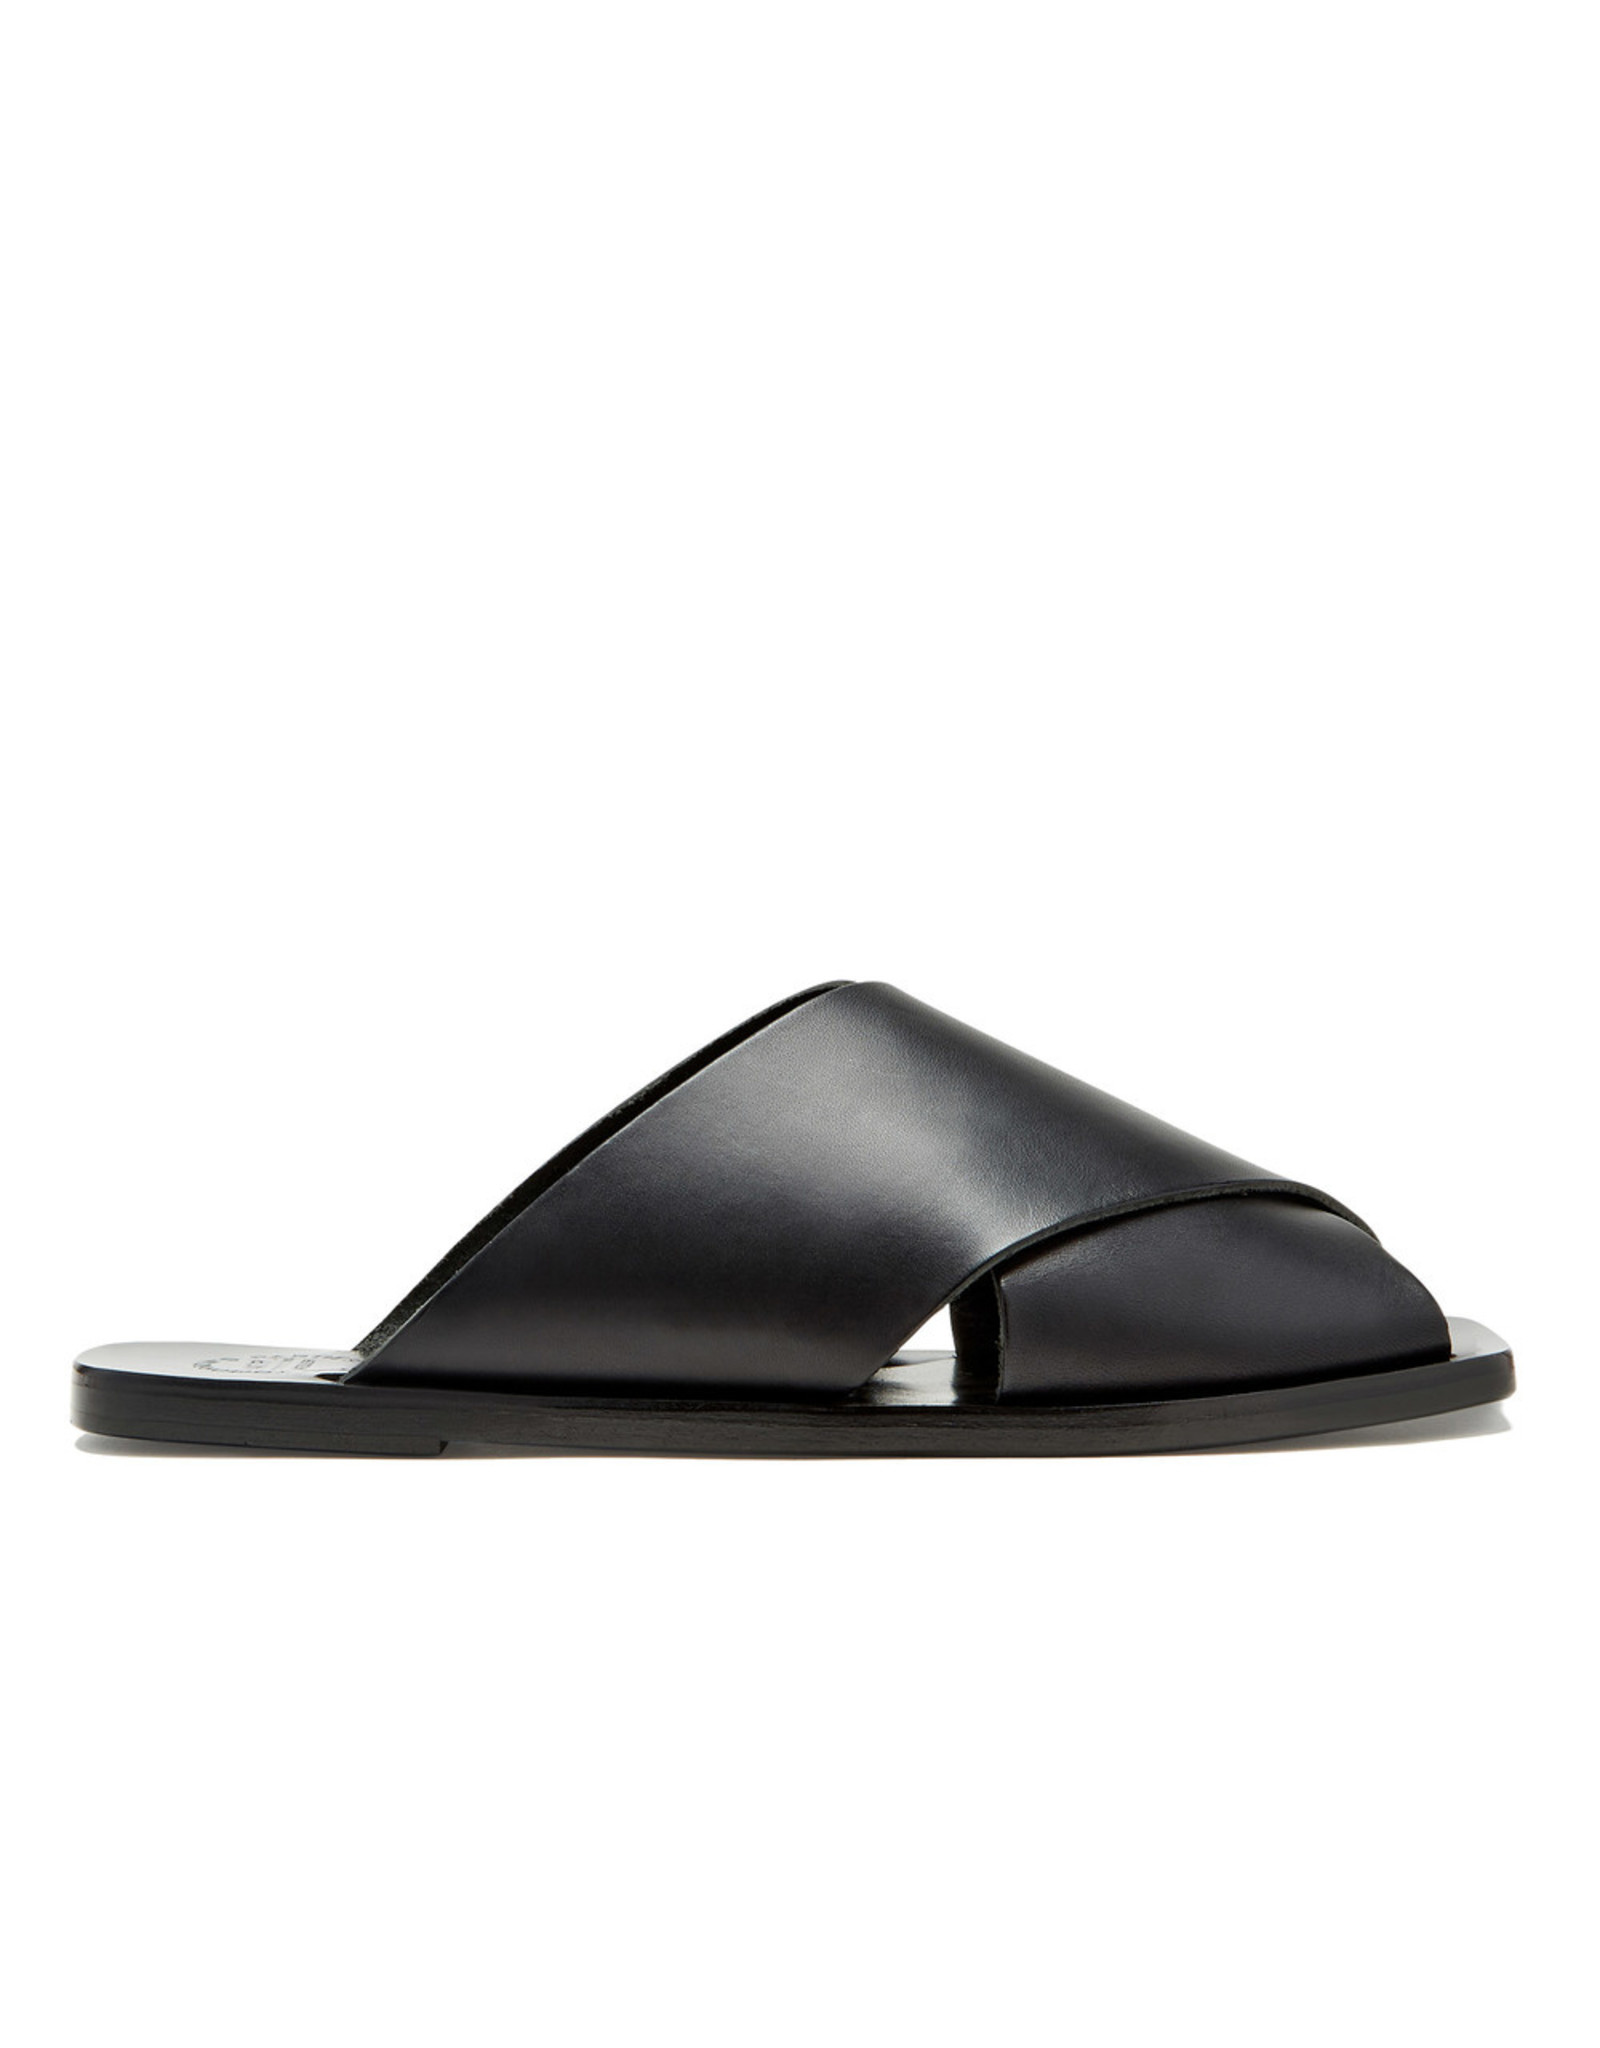 ATP Atelier ATP Atelier Alicia Sandals (Color: Black, Size: IT36)